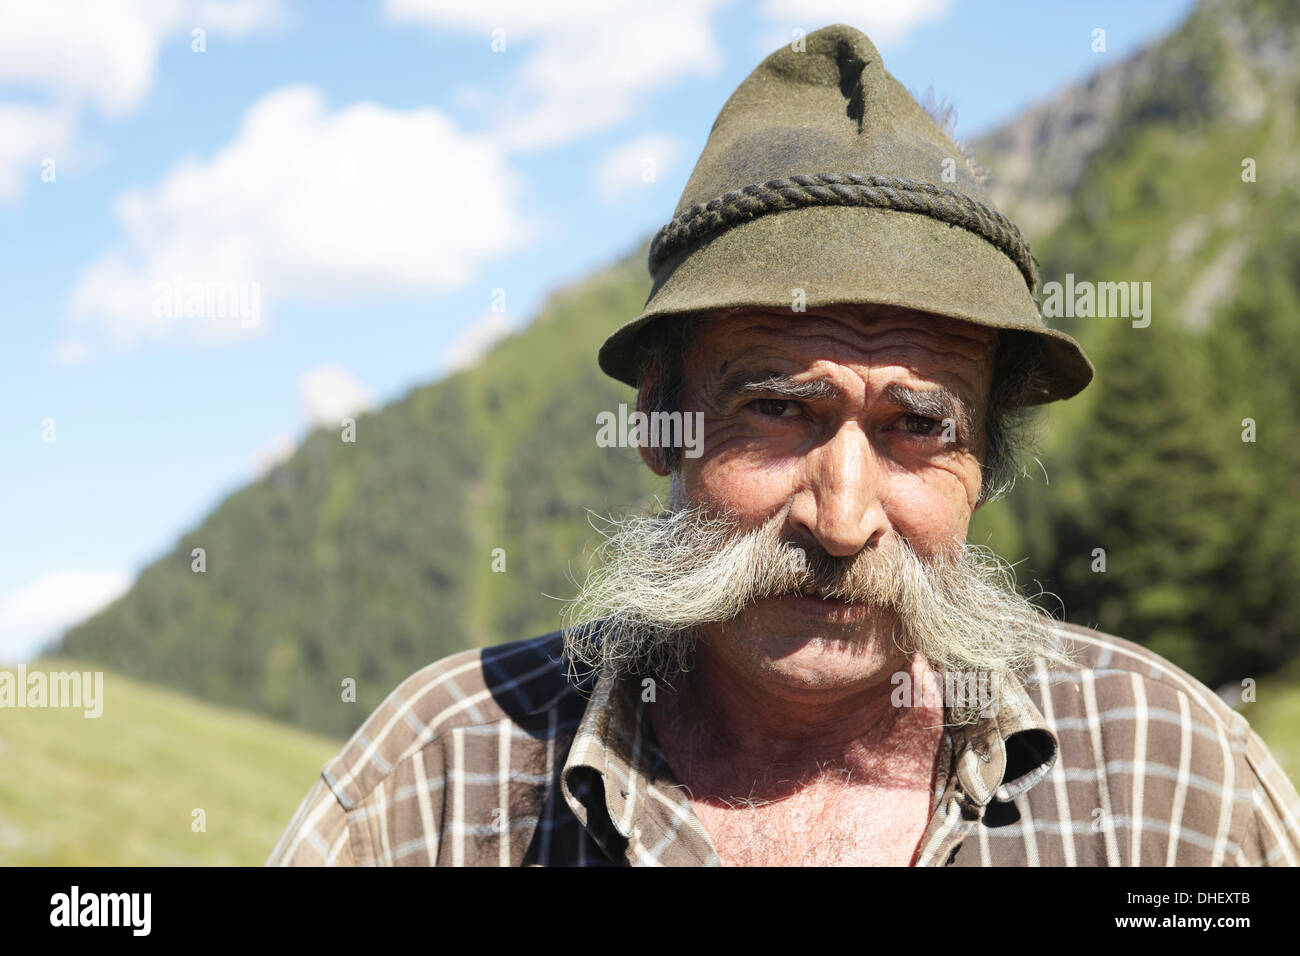 Farmer posing for camera - Stock Image